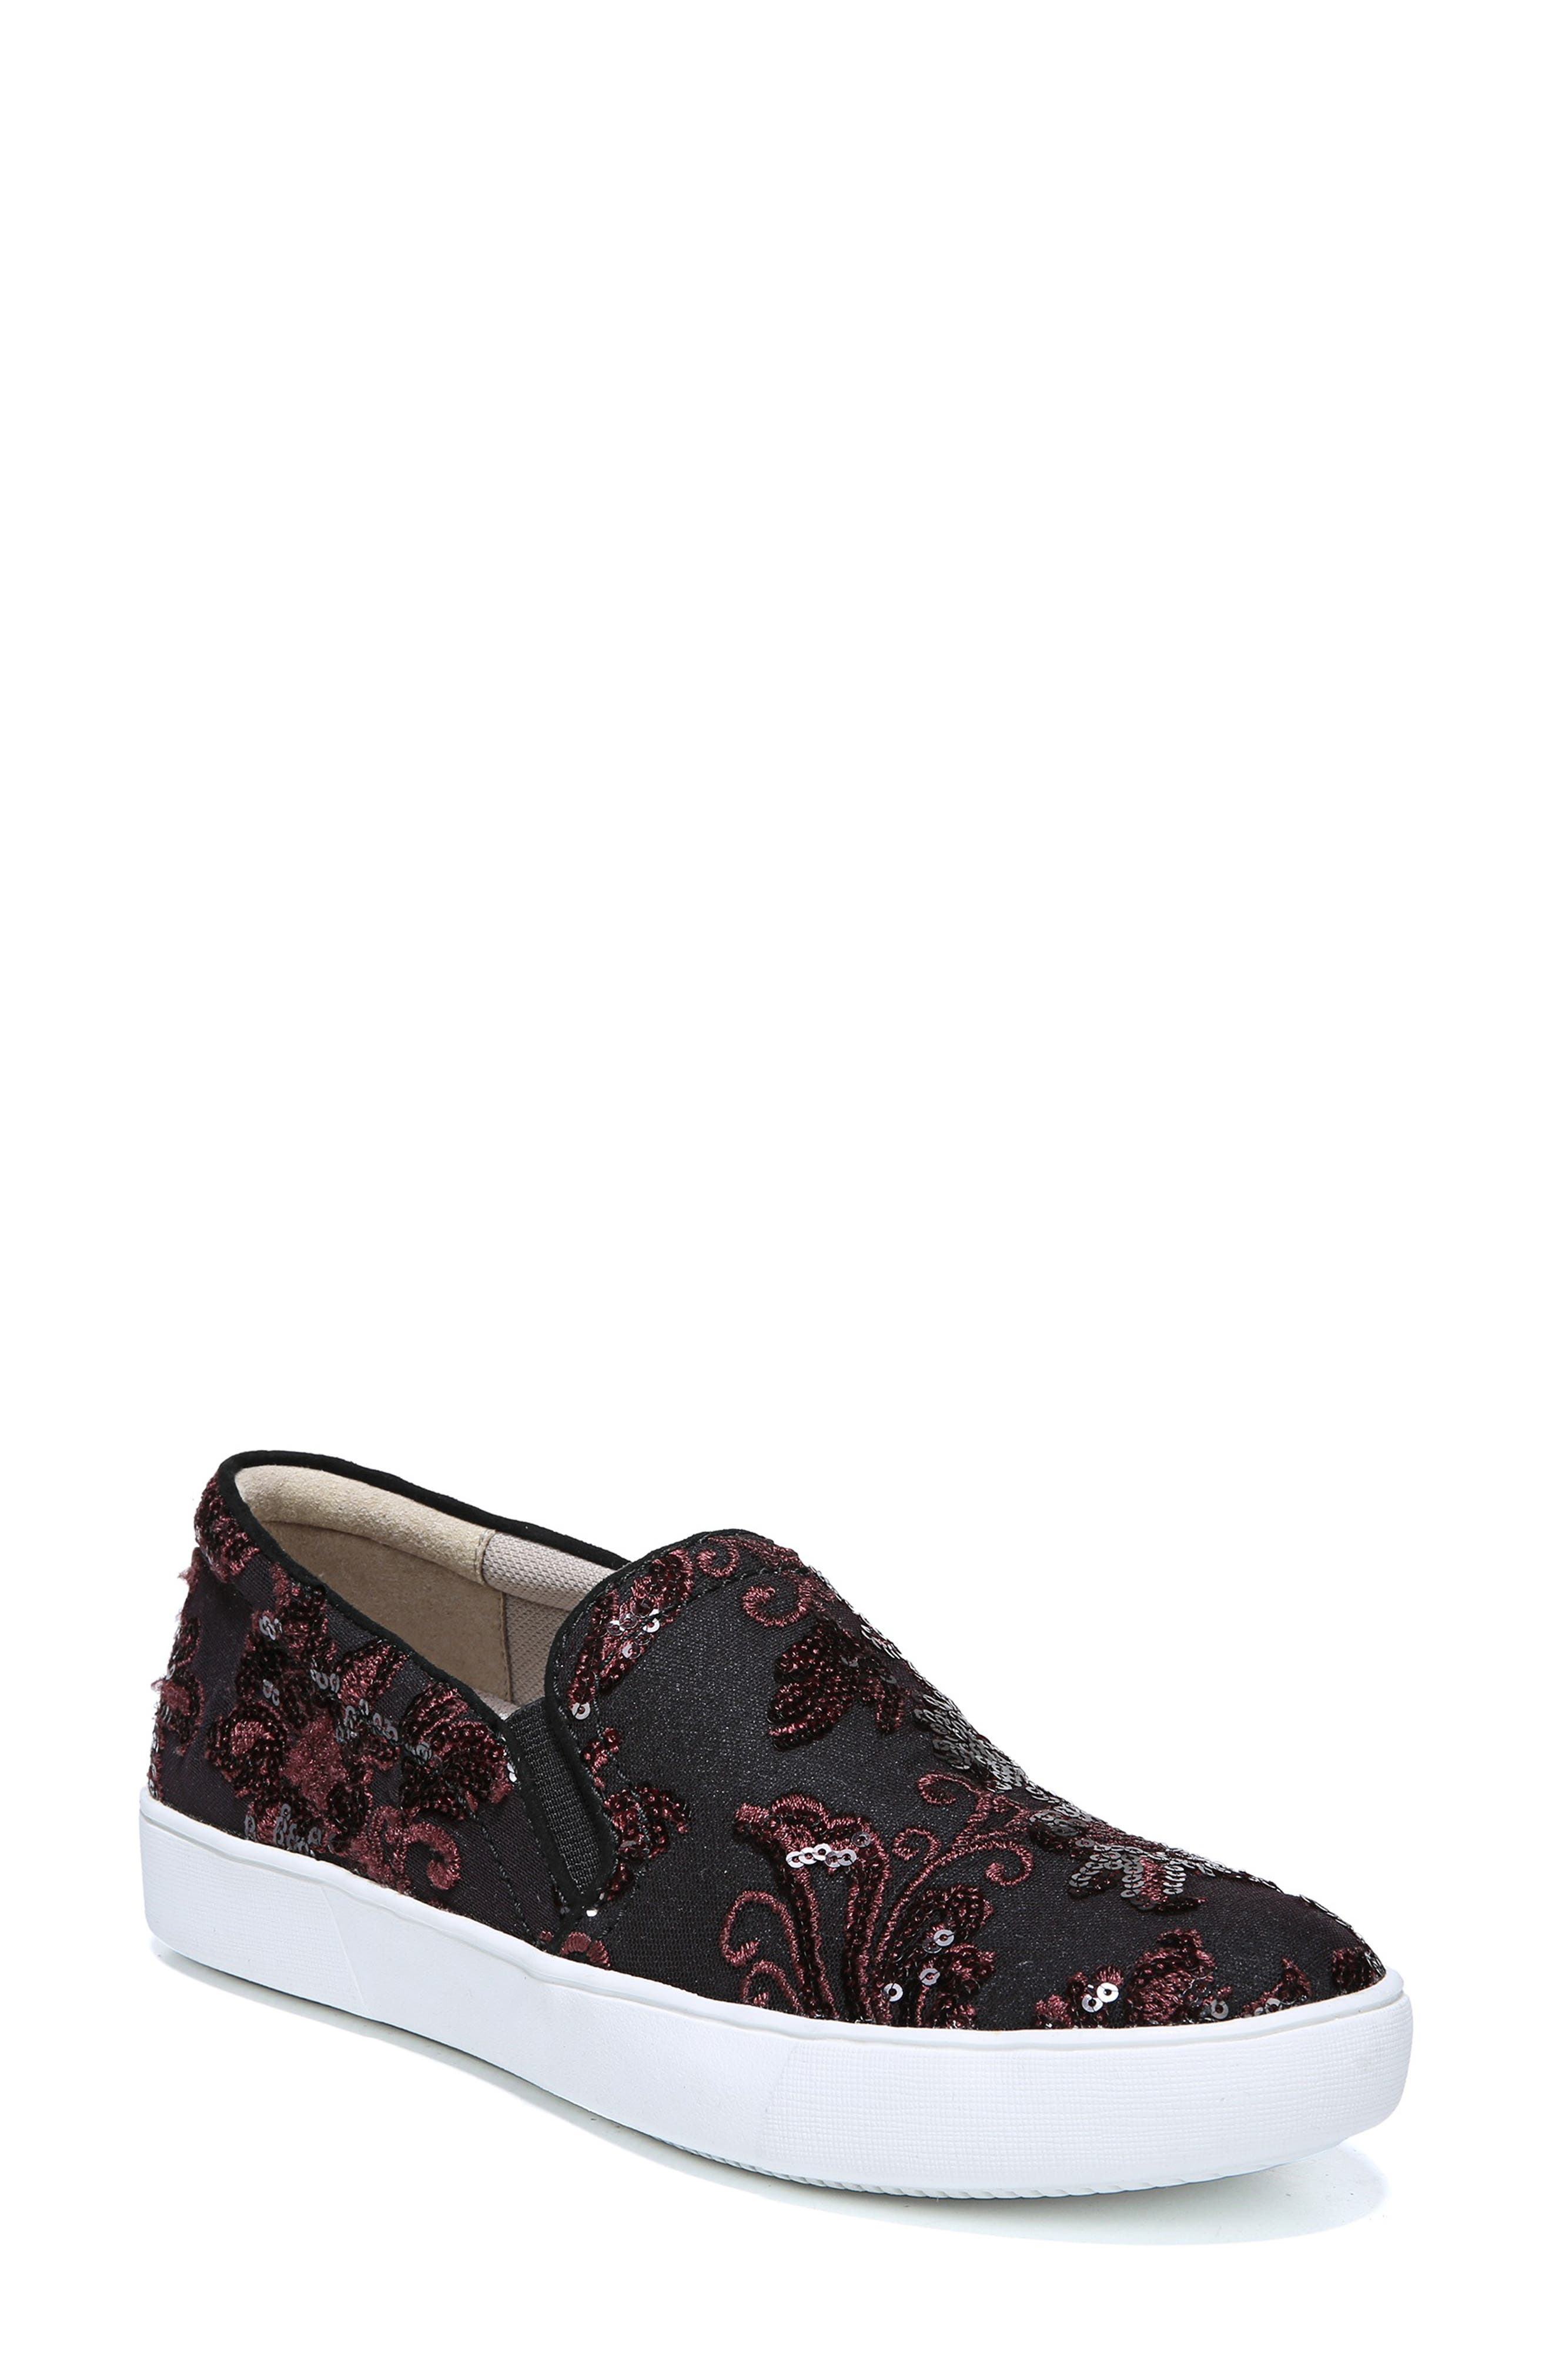 NATURALIZER Marianne Slip-On Sneaker, Main, color, BURGUNDY EMBROIDERED